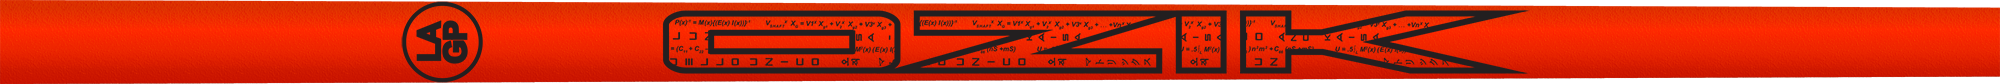 Ozik White Tie: Ferrari Red Black Textured - Wood 50 A